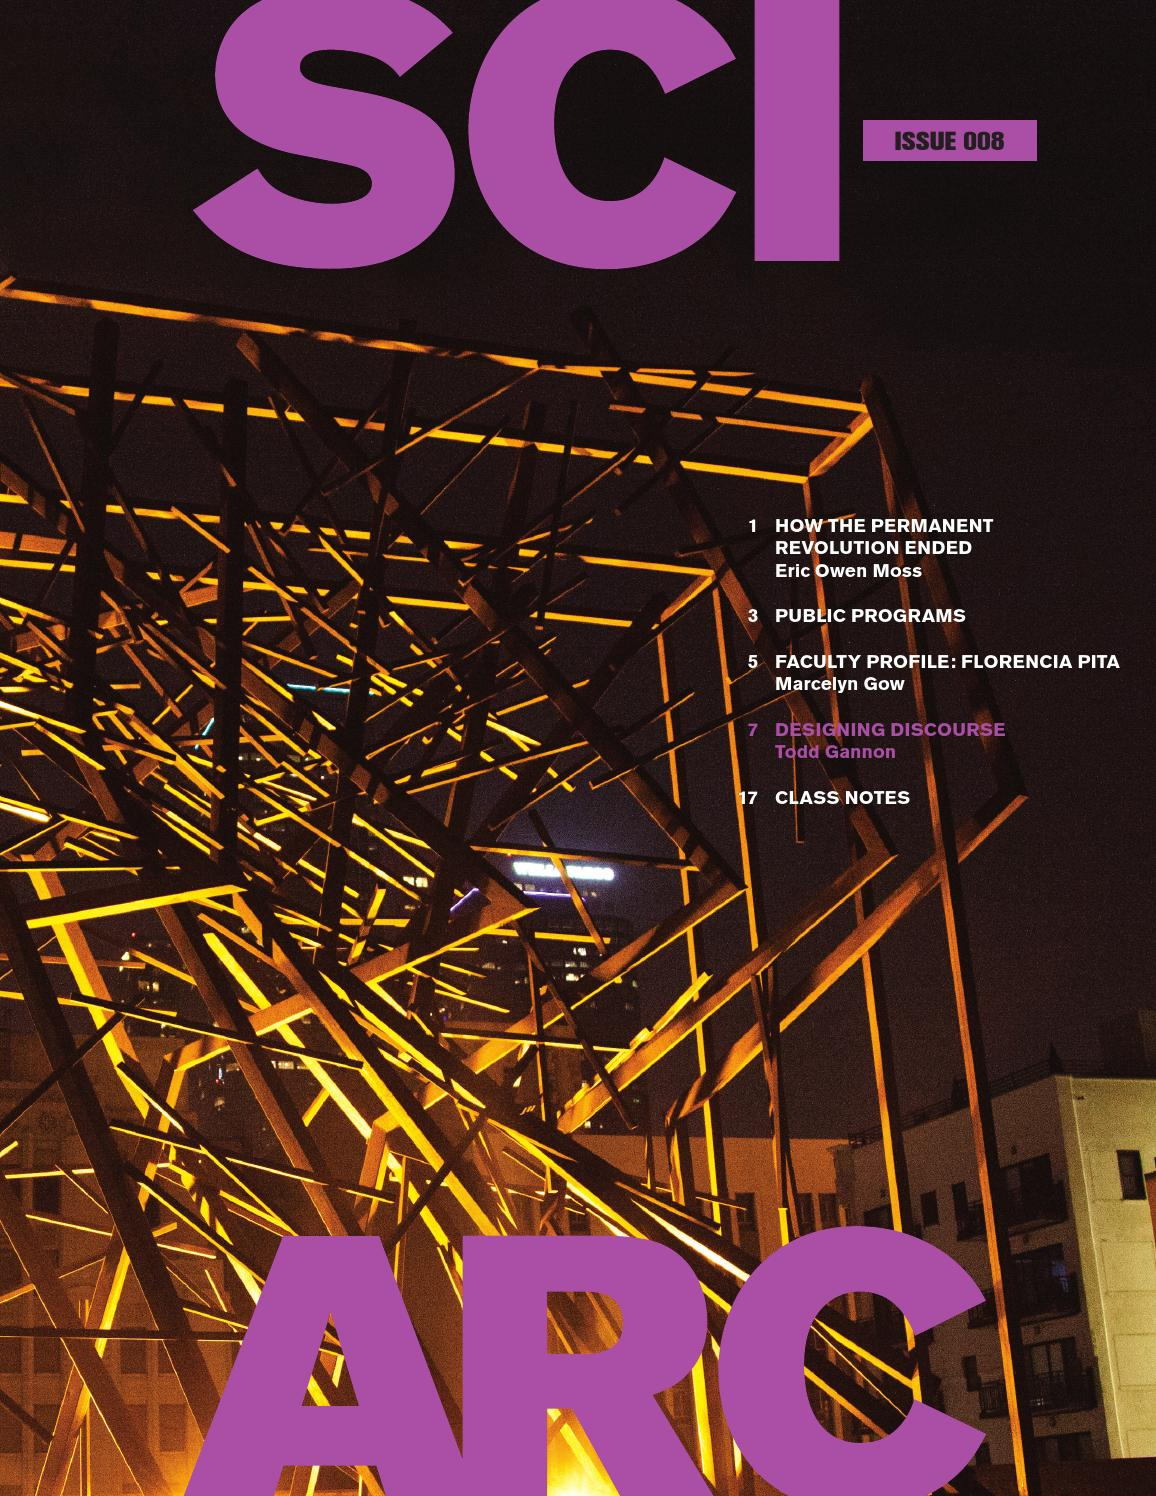 Sci arc magazine issue no 4 spring 2012 by sci arc issuu malvernweather Image collections